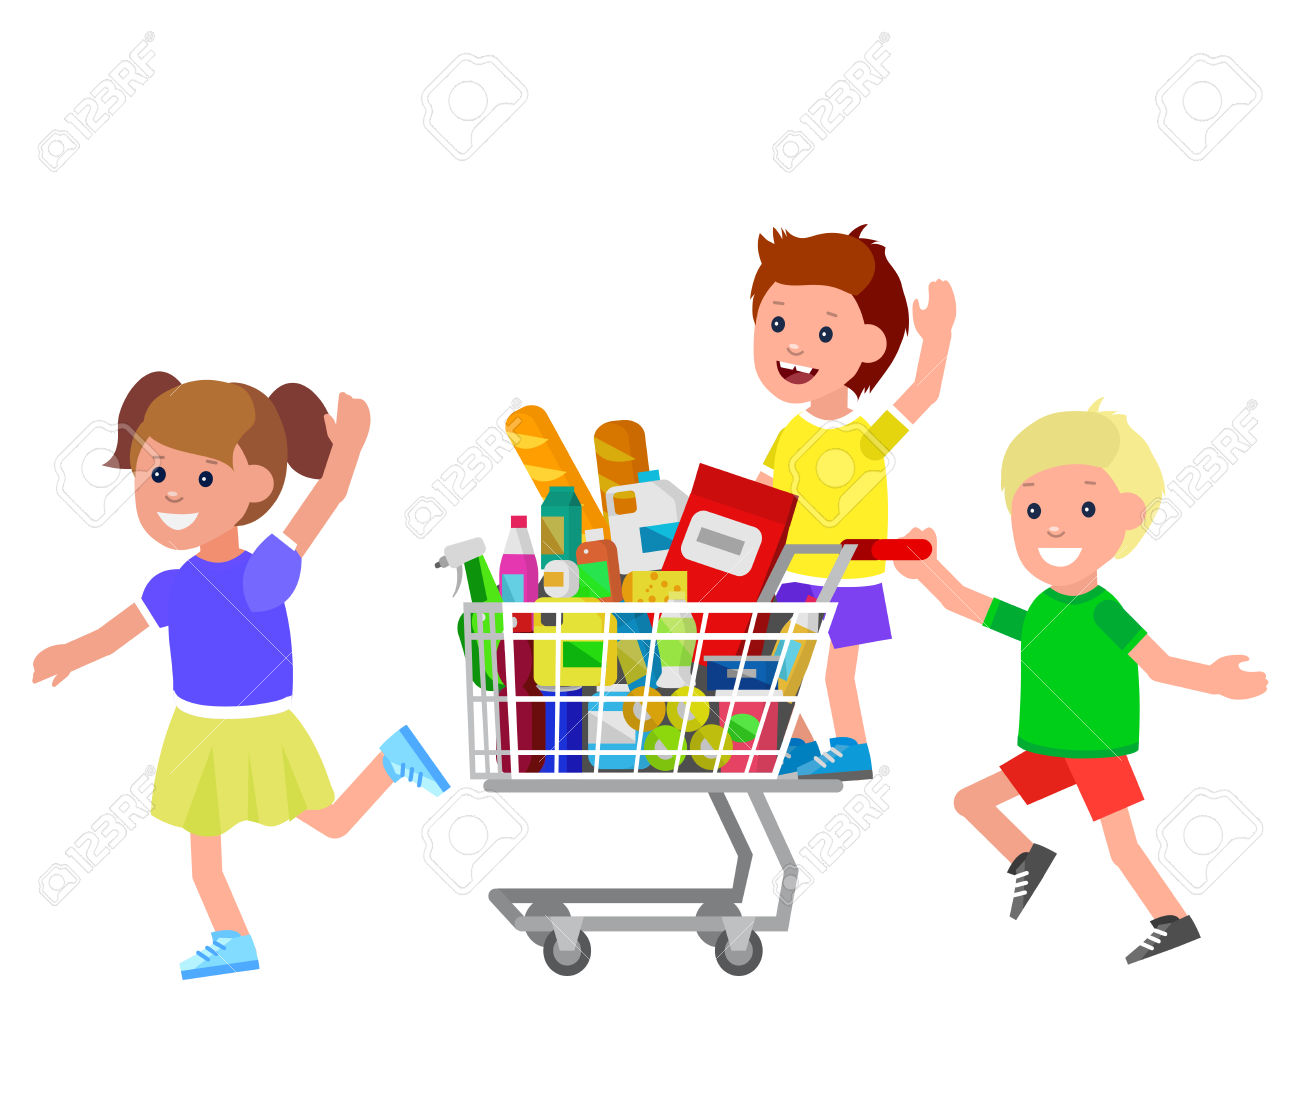 royalty free library Transparent png free download. Cart clipart child.